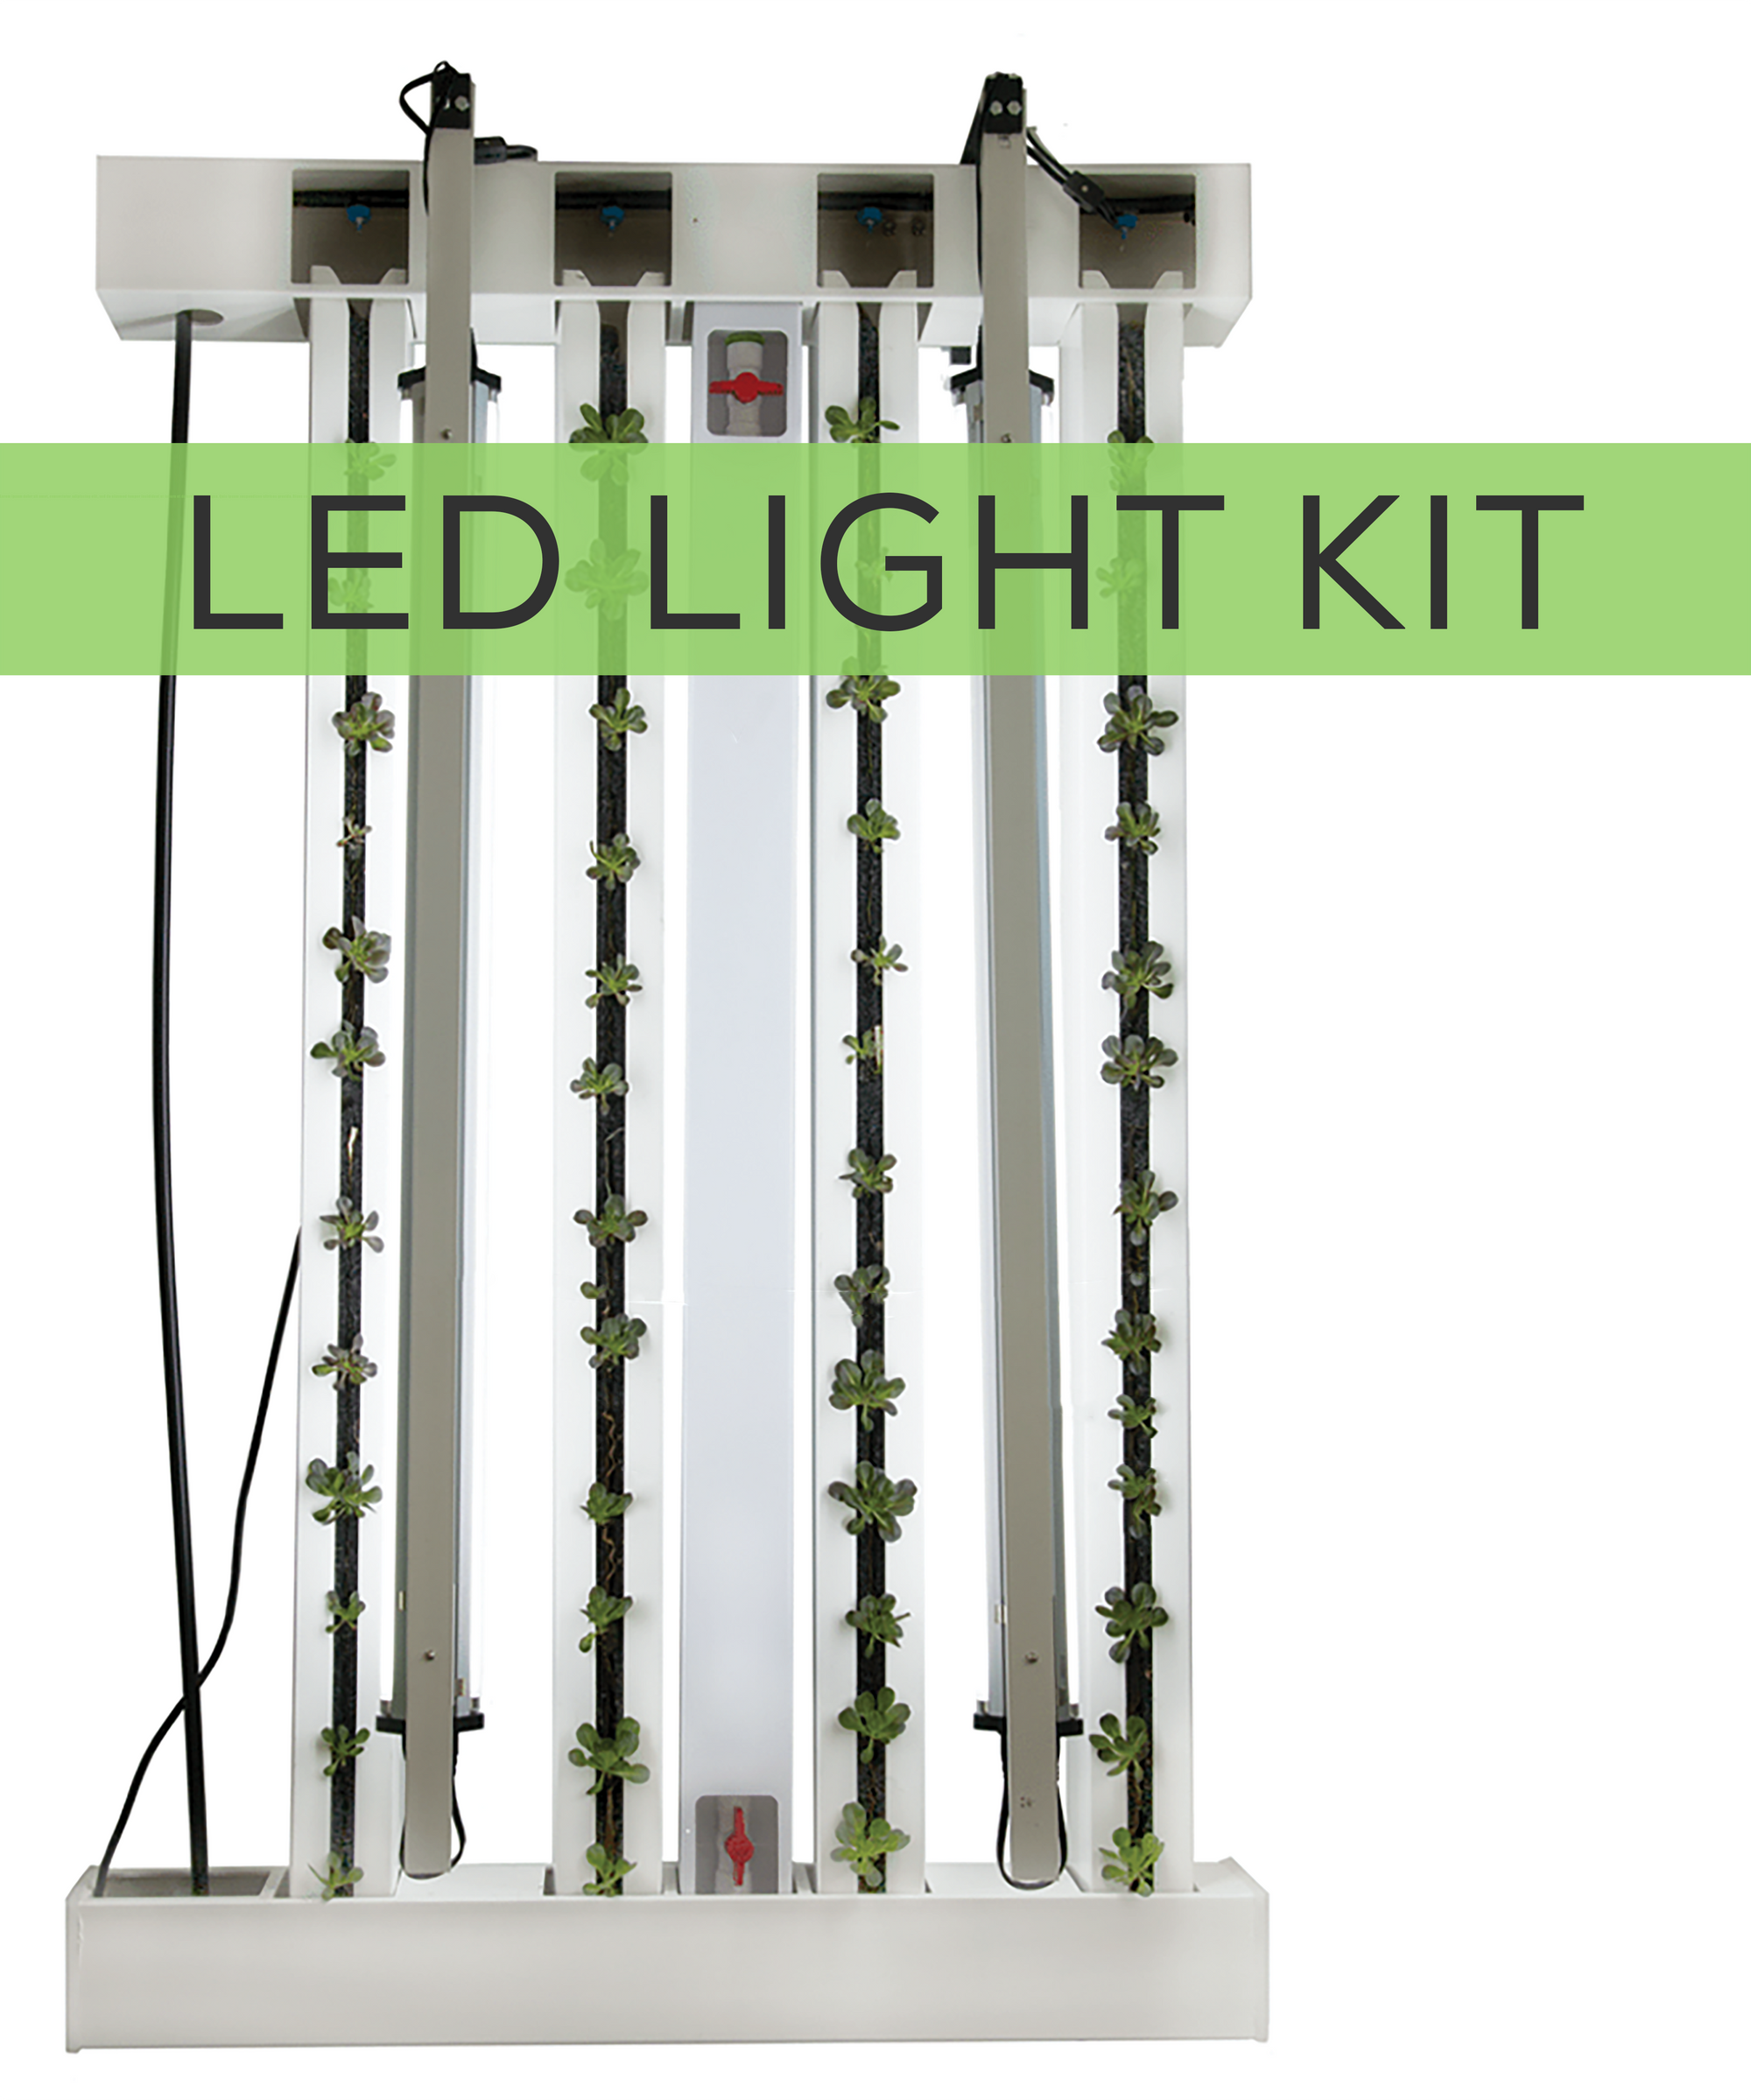 Farm Wall™ LED Light Kit